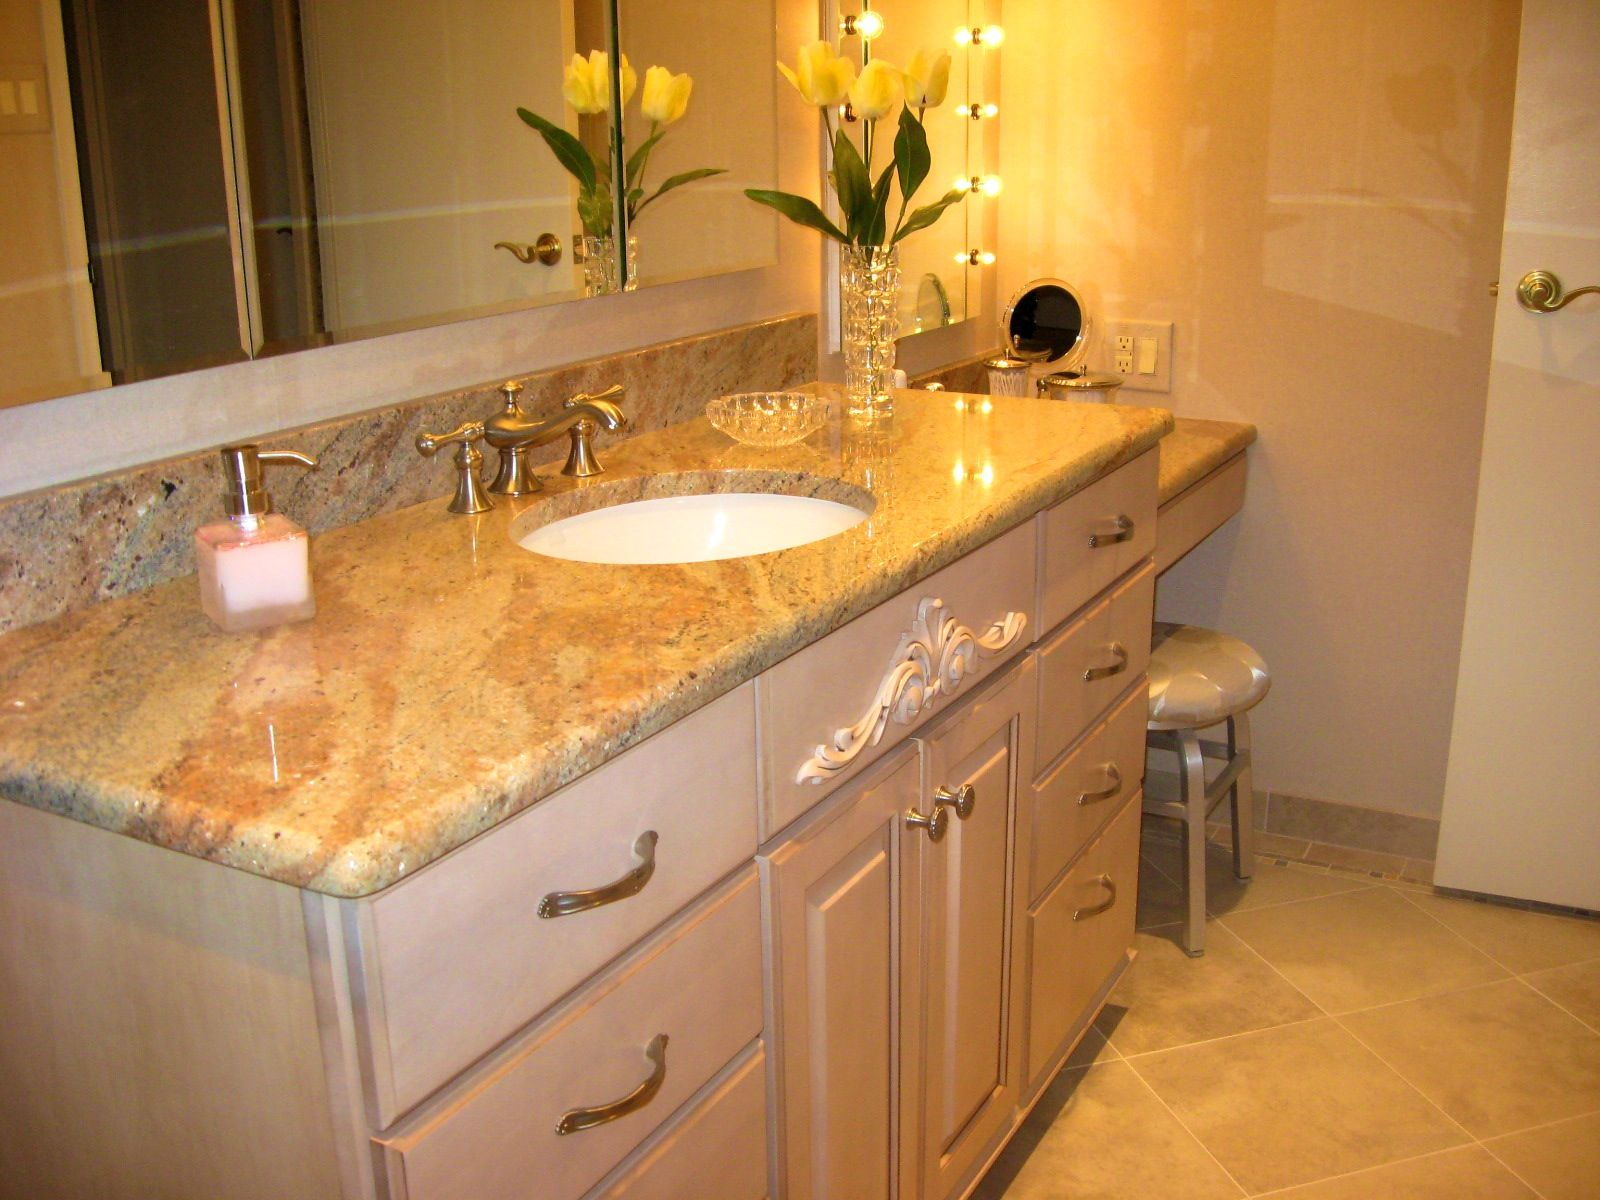 Bathroomastounding Vanity Tops Napolis Countertops Custom Bathroom Vanities Cleaning Granite Corian Ealing Rectangular Undermount Sink